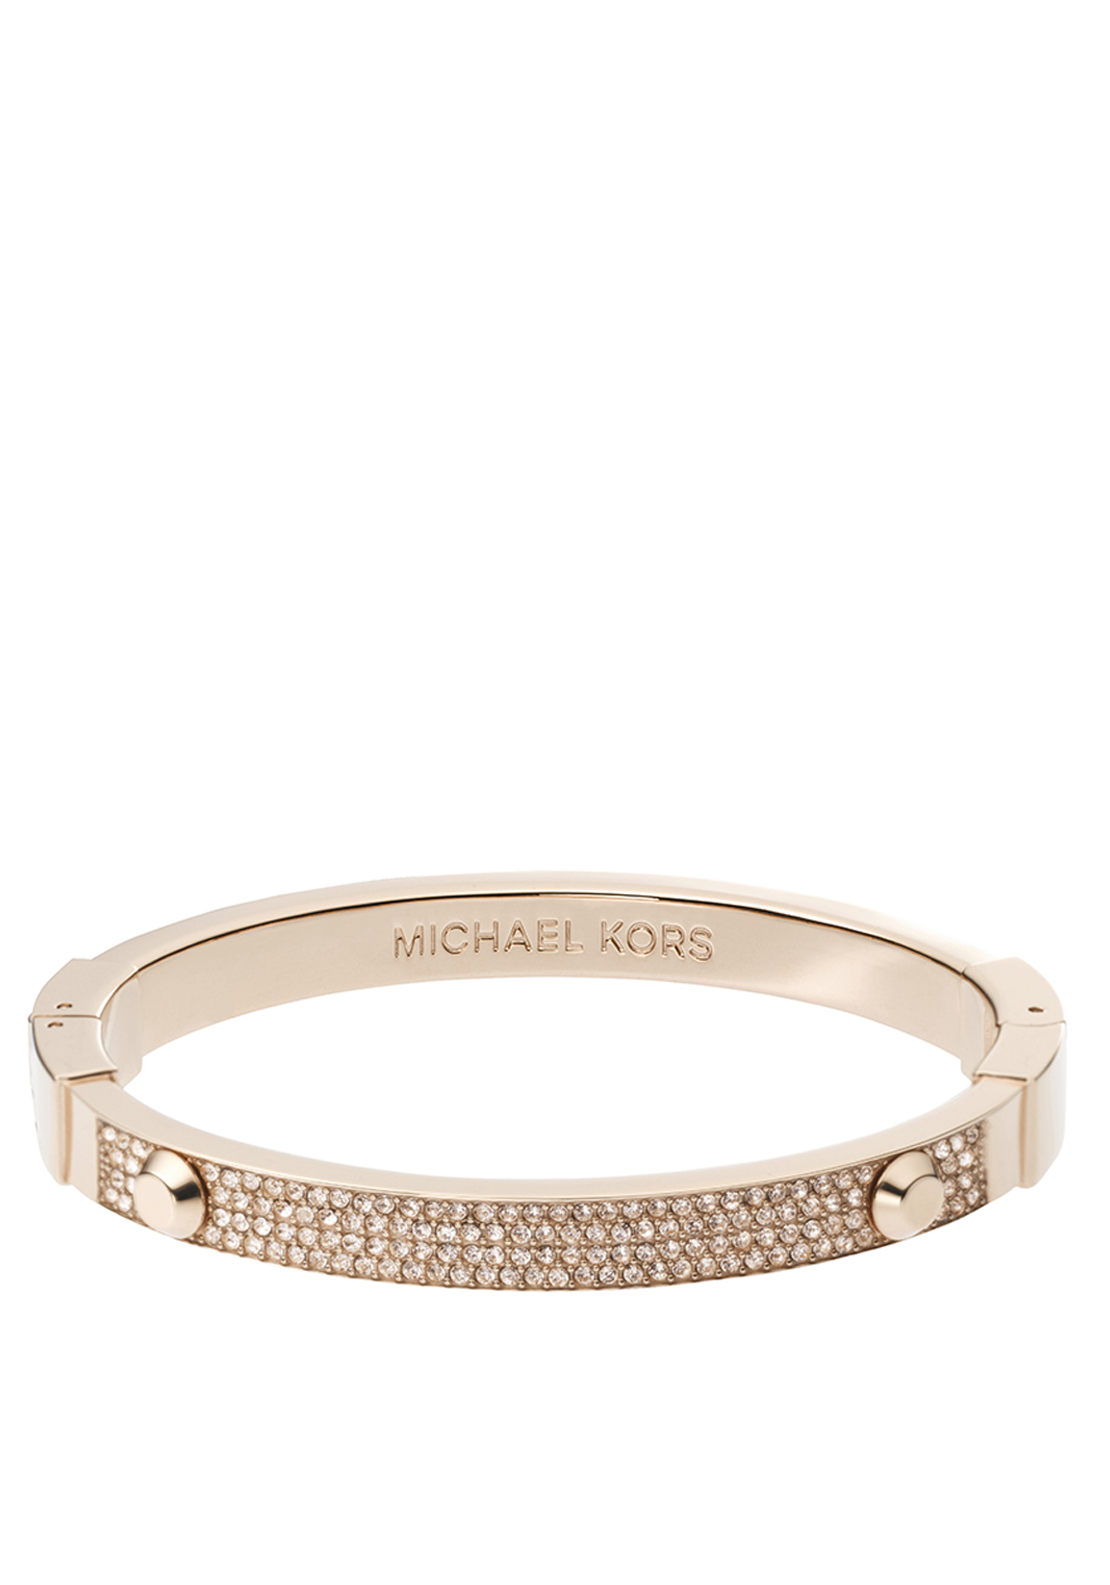 Michael Kors Womens Astor Crystal Bangle, Rose Gold